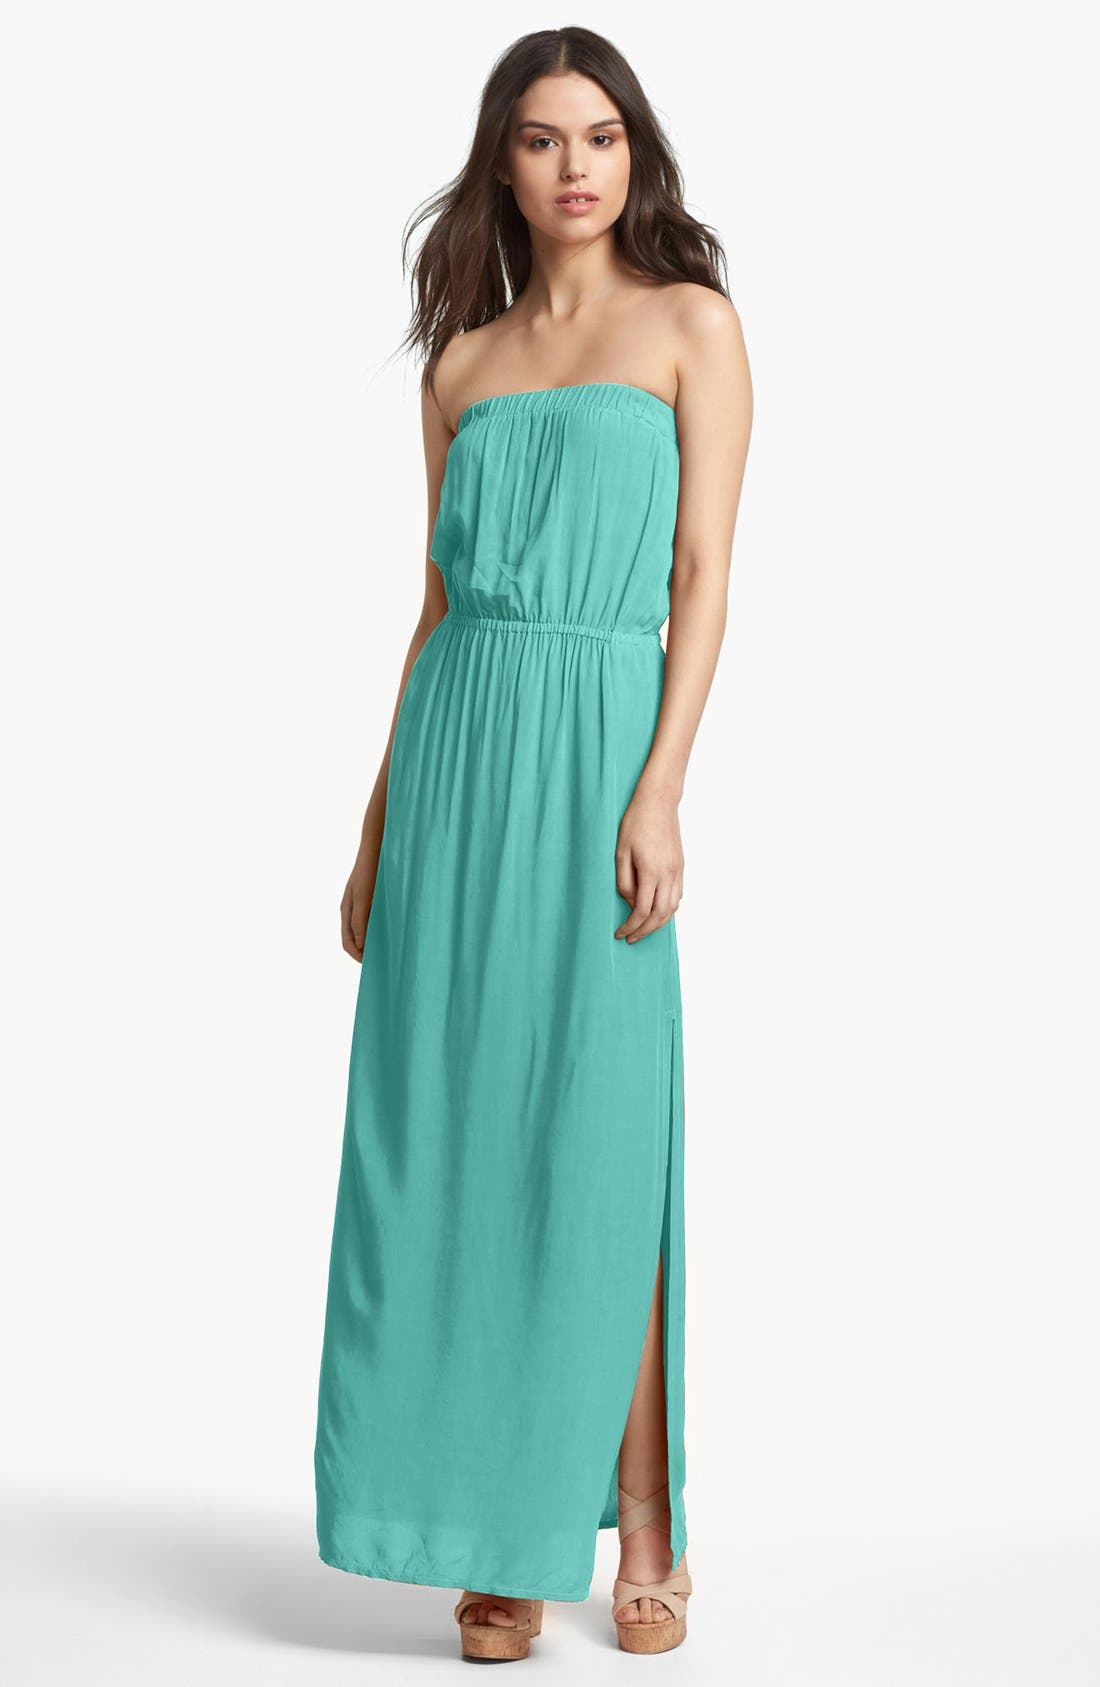 Main Image - Splendid Strapless Maxi Dress